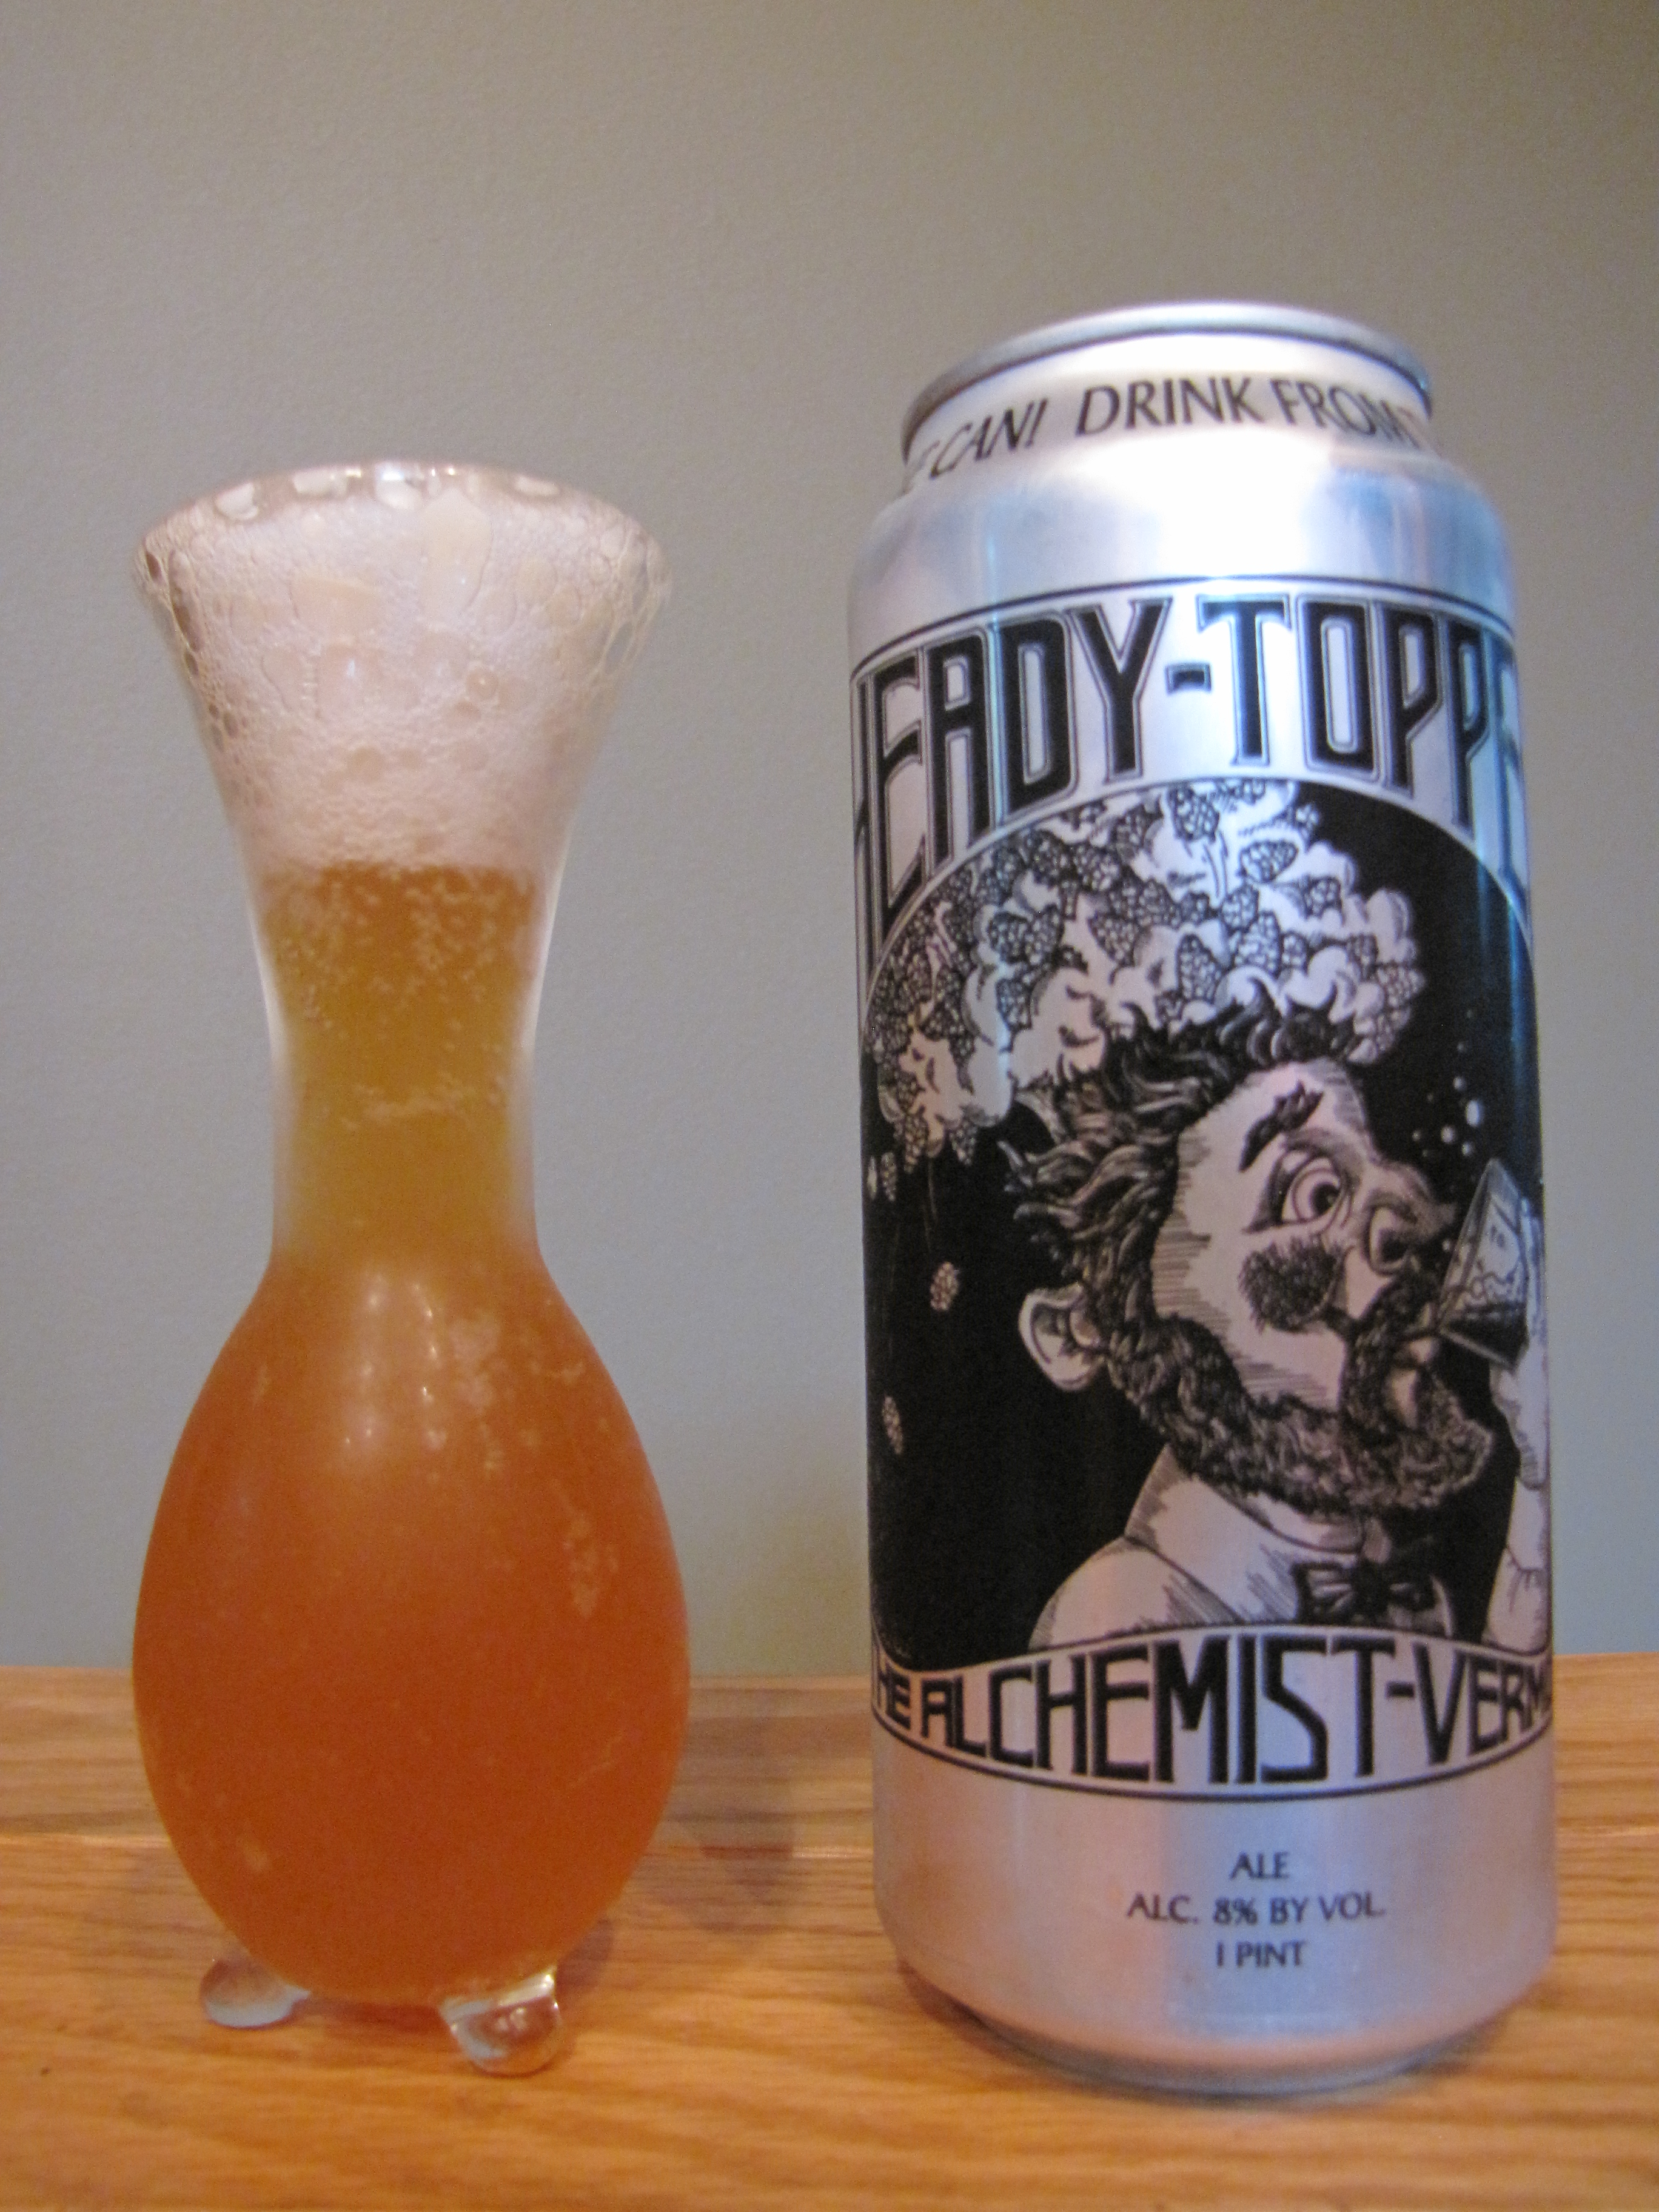 The Alchemist Heady Topper Imperial IPA